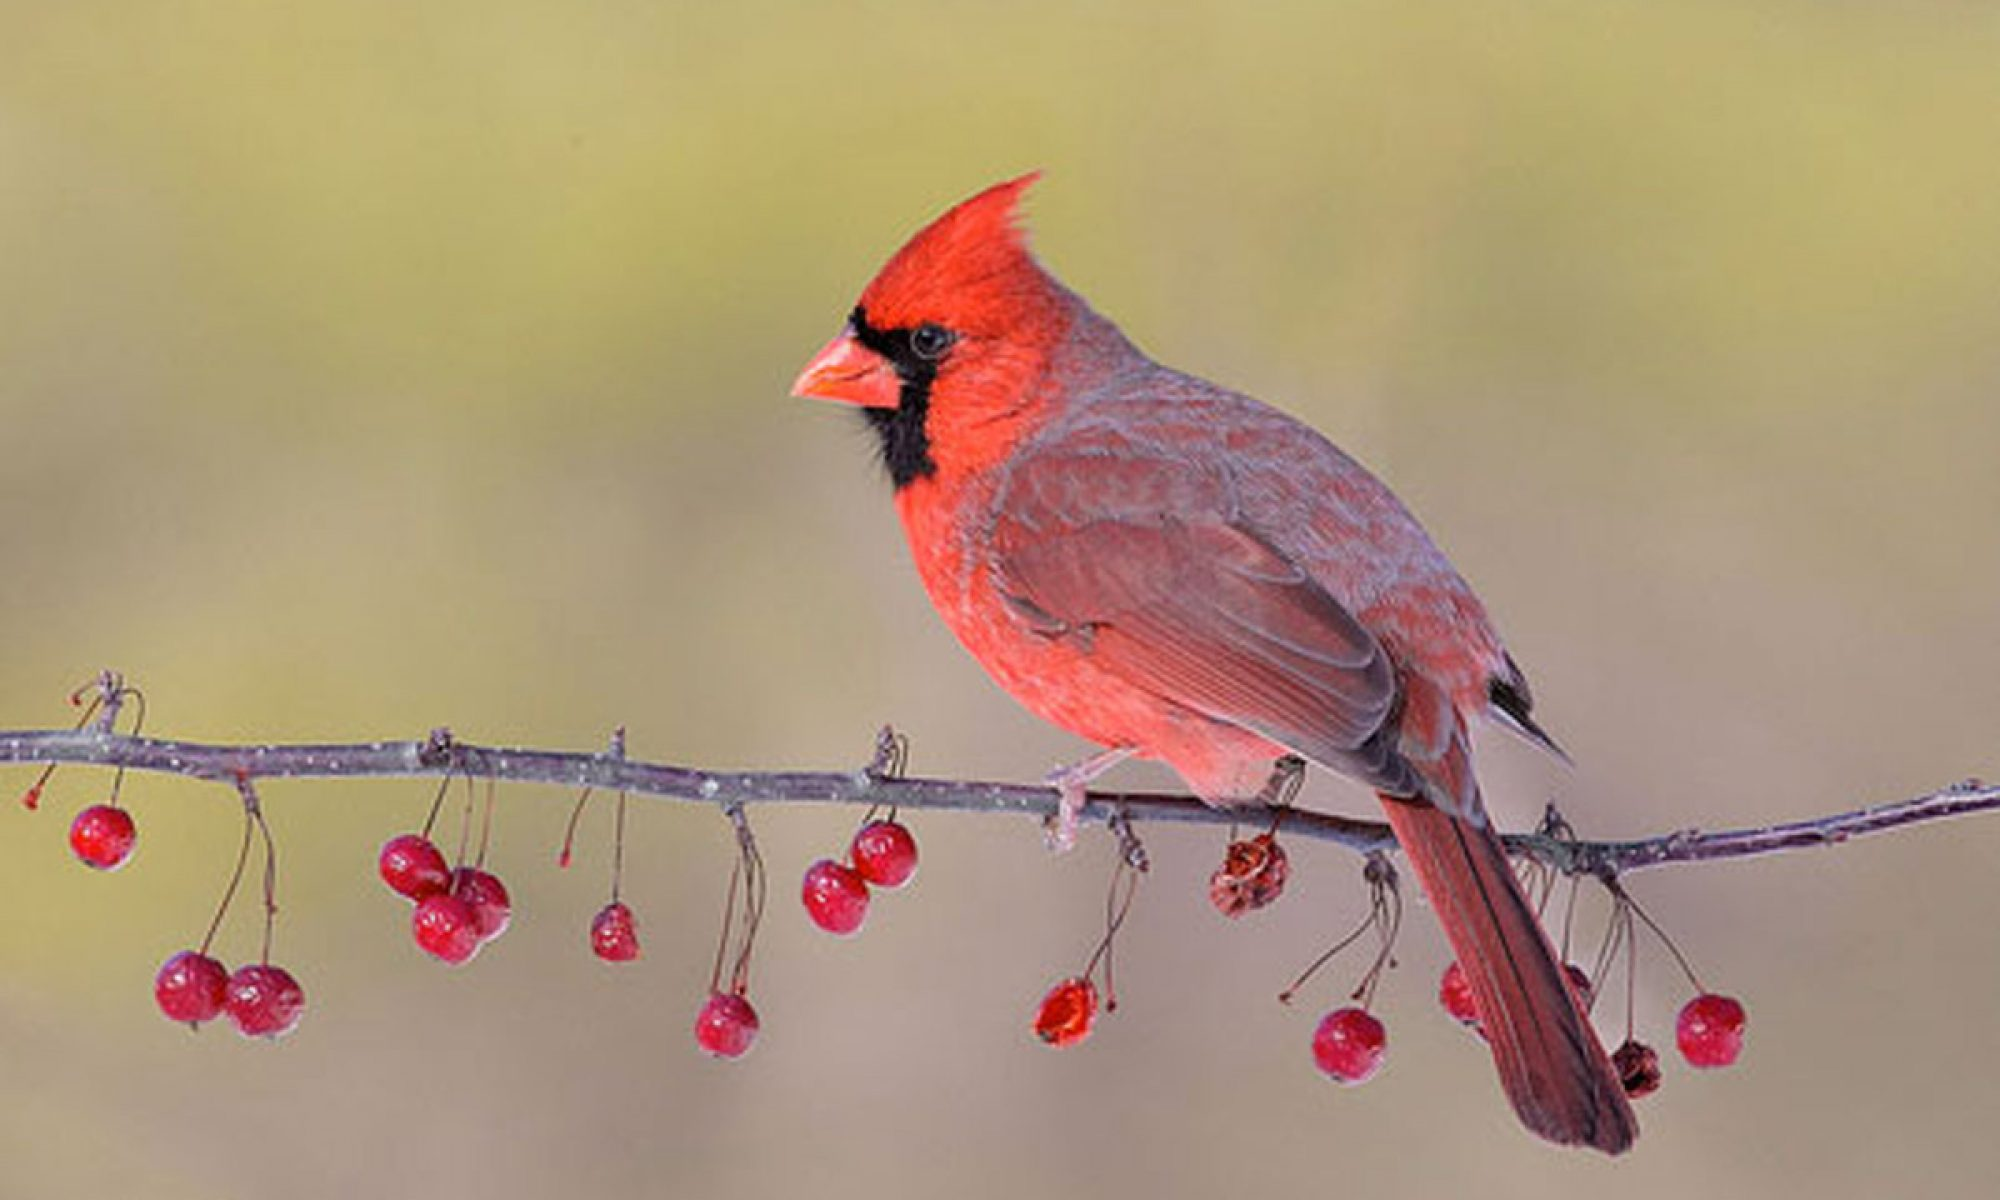 Eating Cardinals